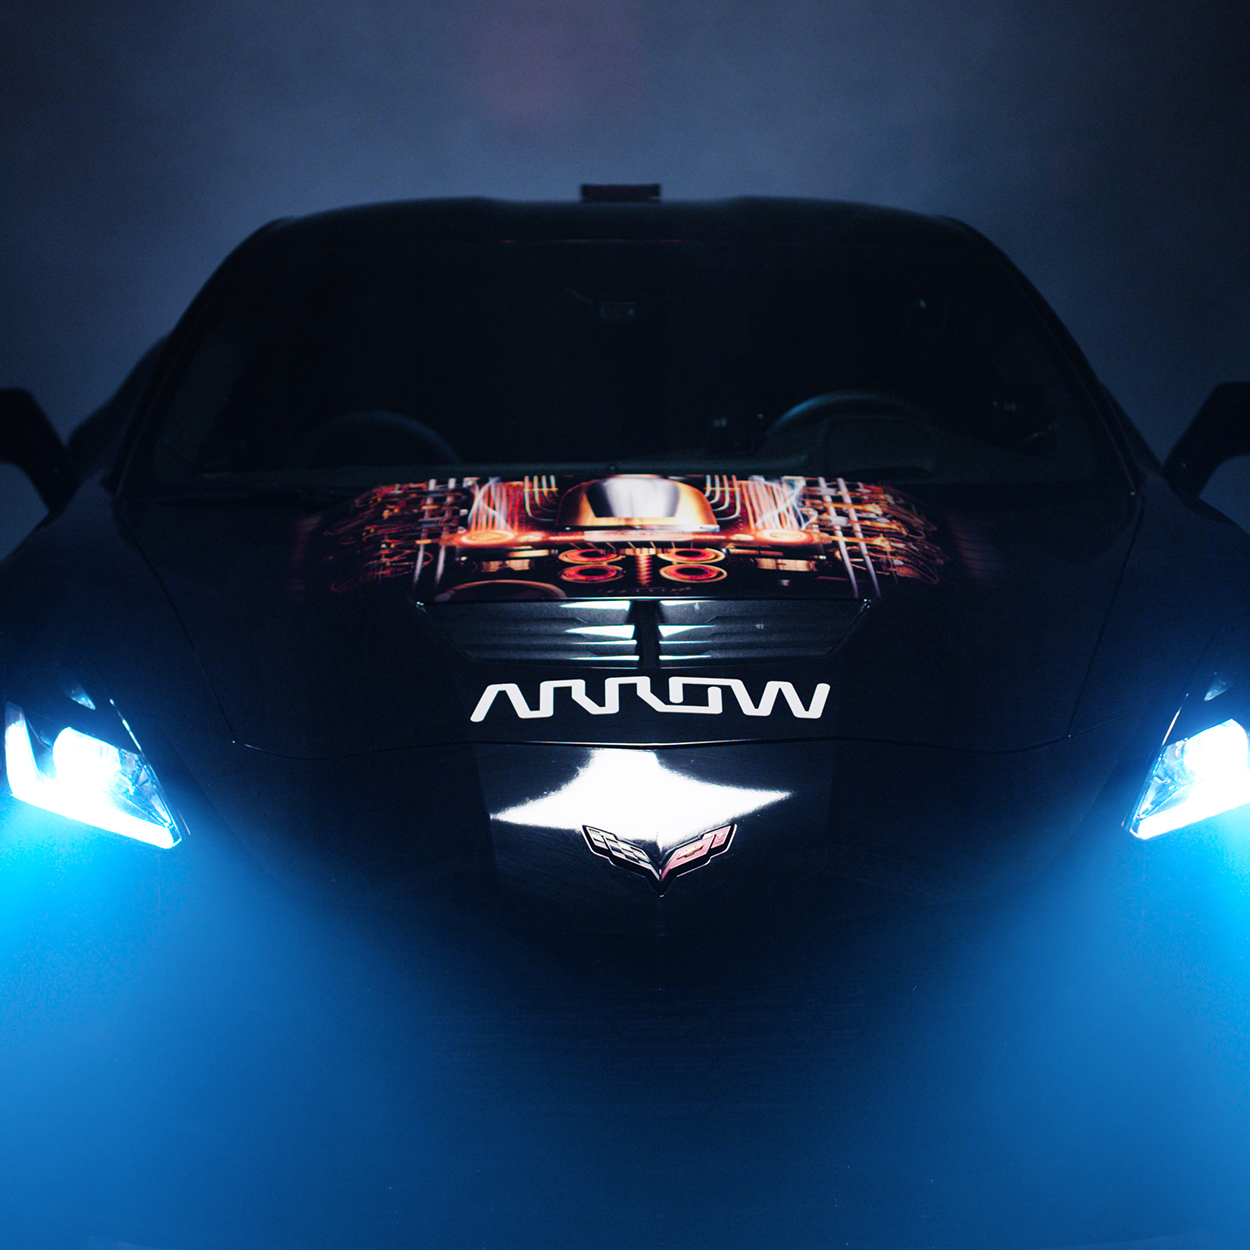 Dramatically lit shot of the Arrow SAM race car with bright headlights.